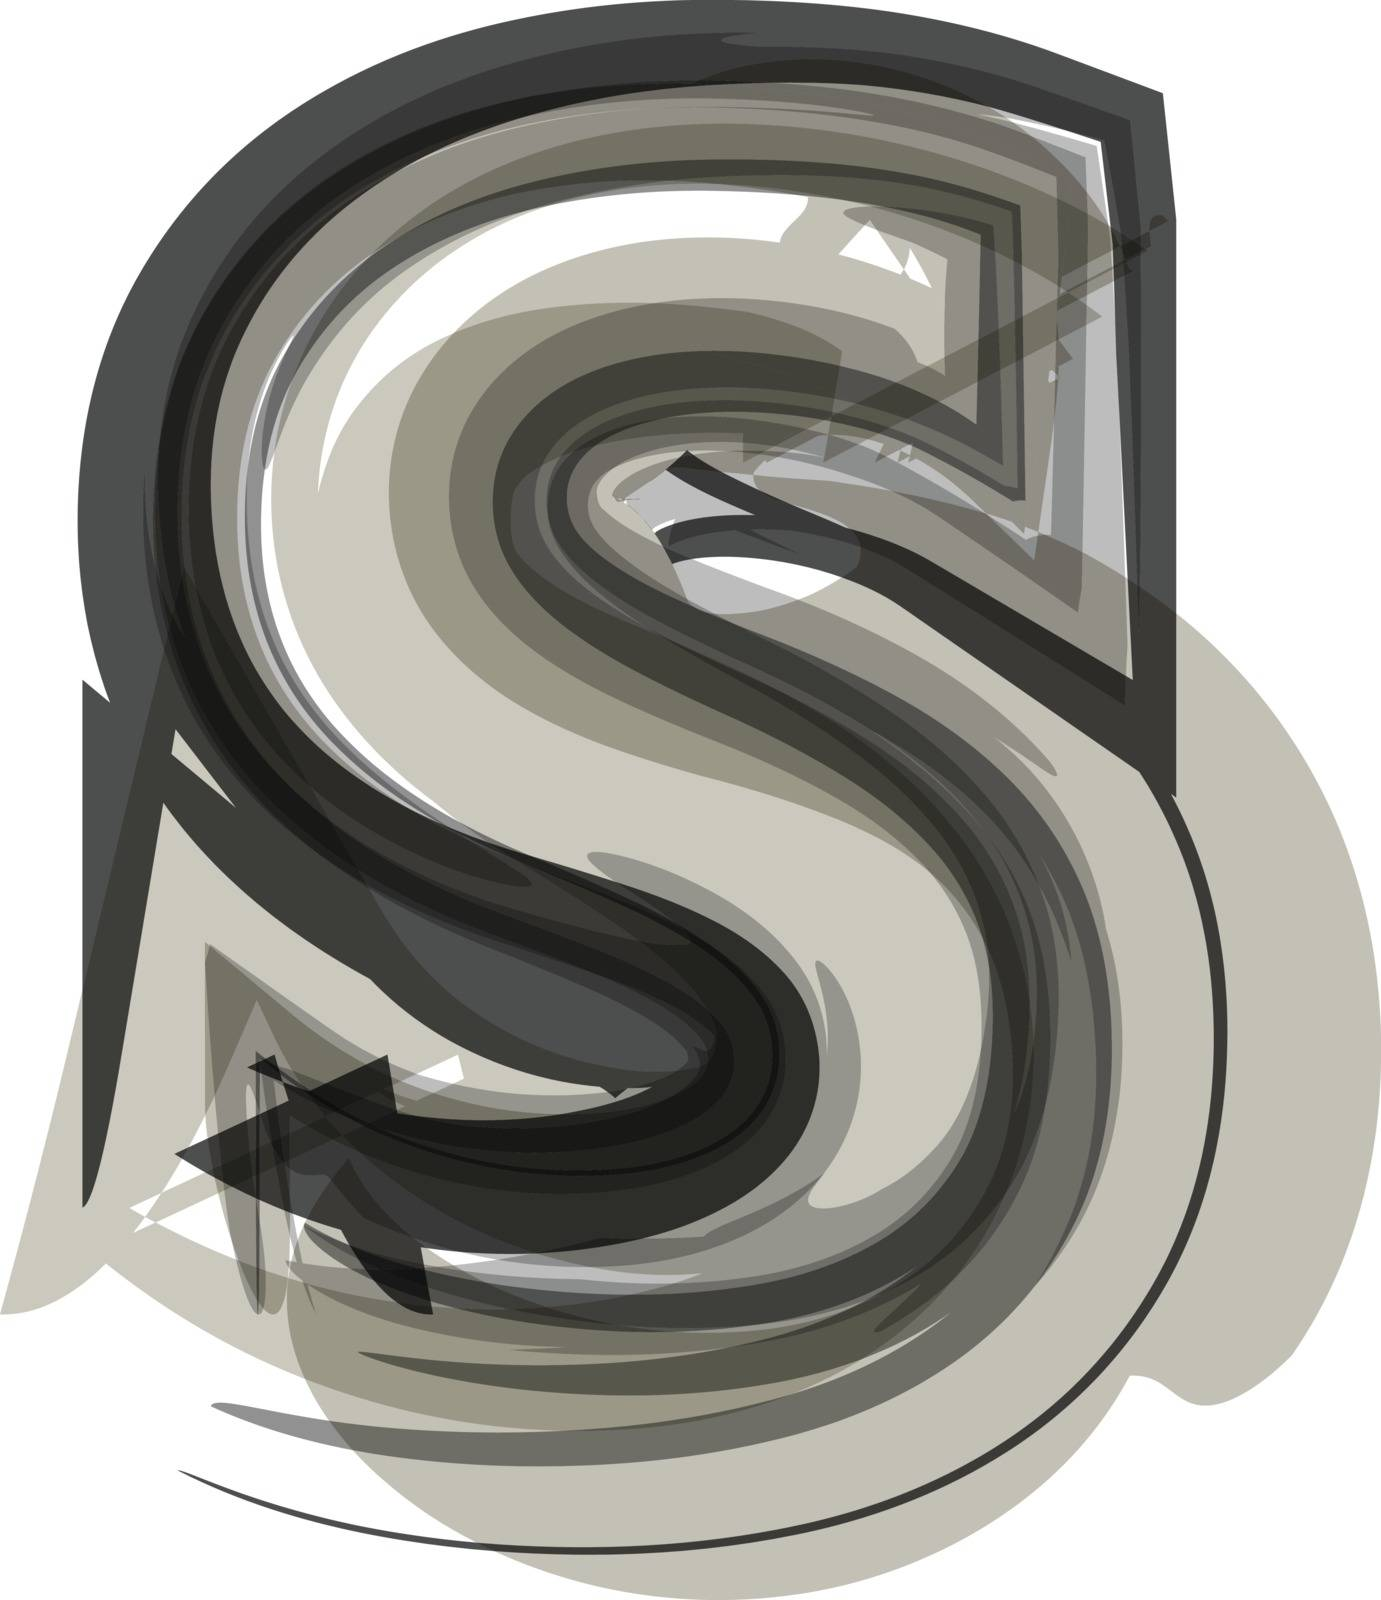 Abstract Letter S illustration